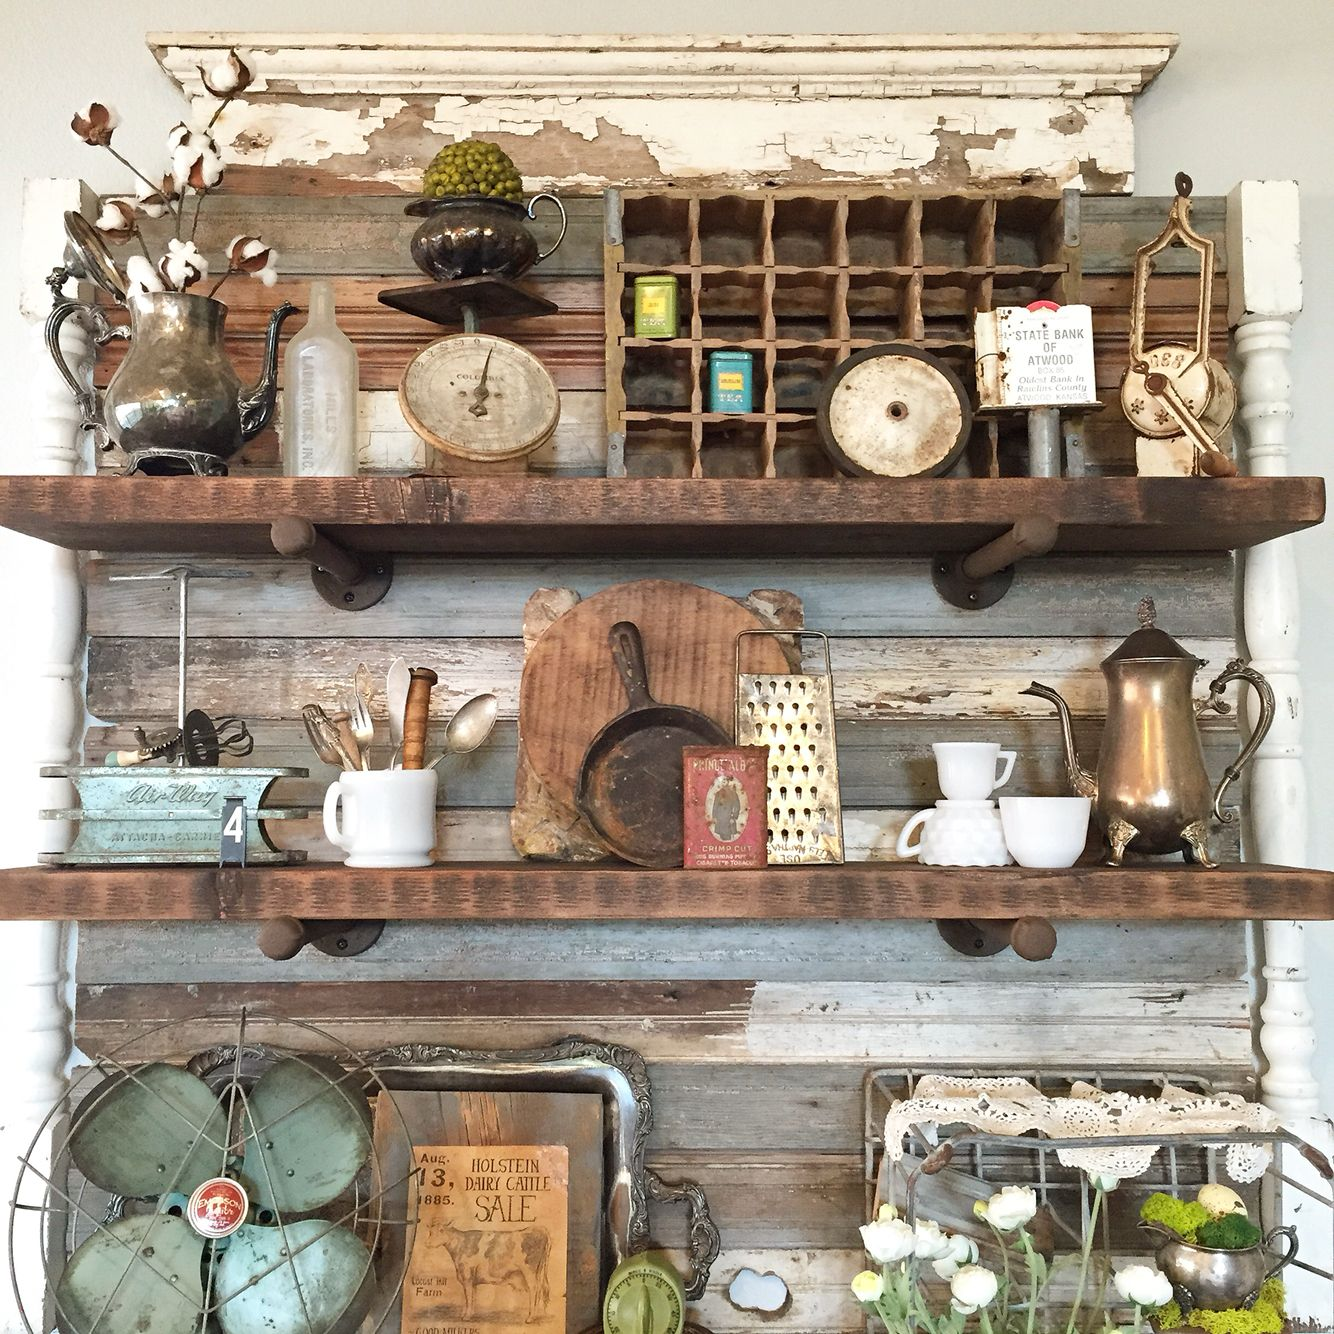 DIY Shelves & Shabby Chic Vintage Decor